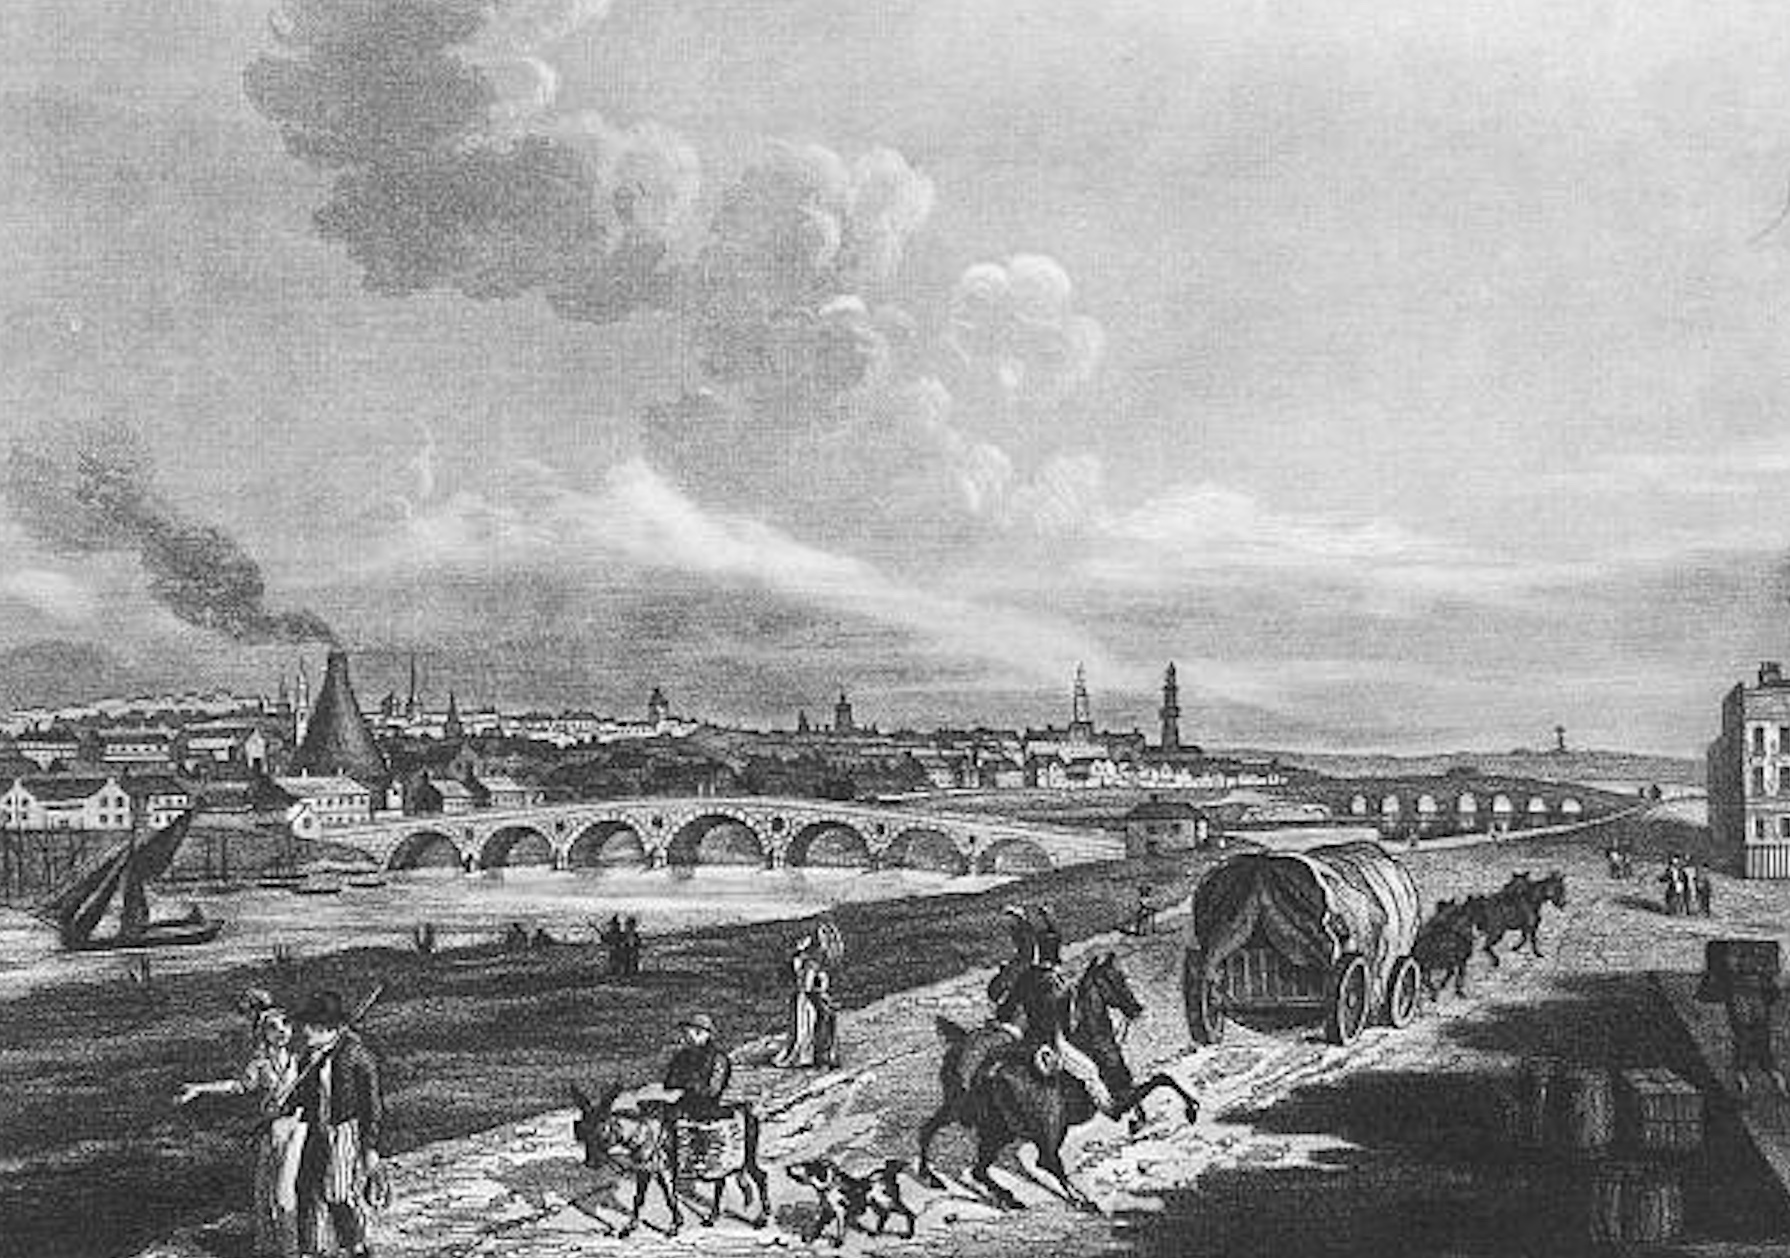 Banks of the Clyde, Glasgow, 1817